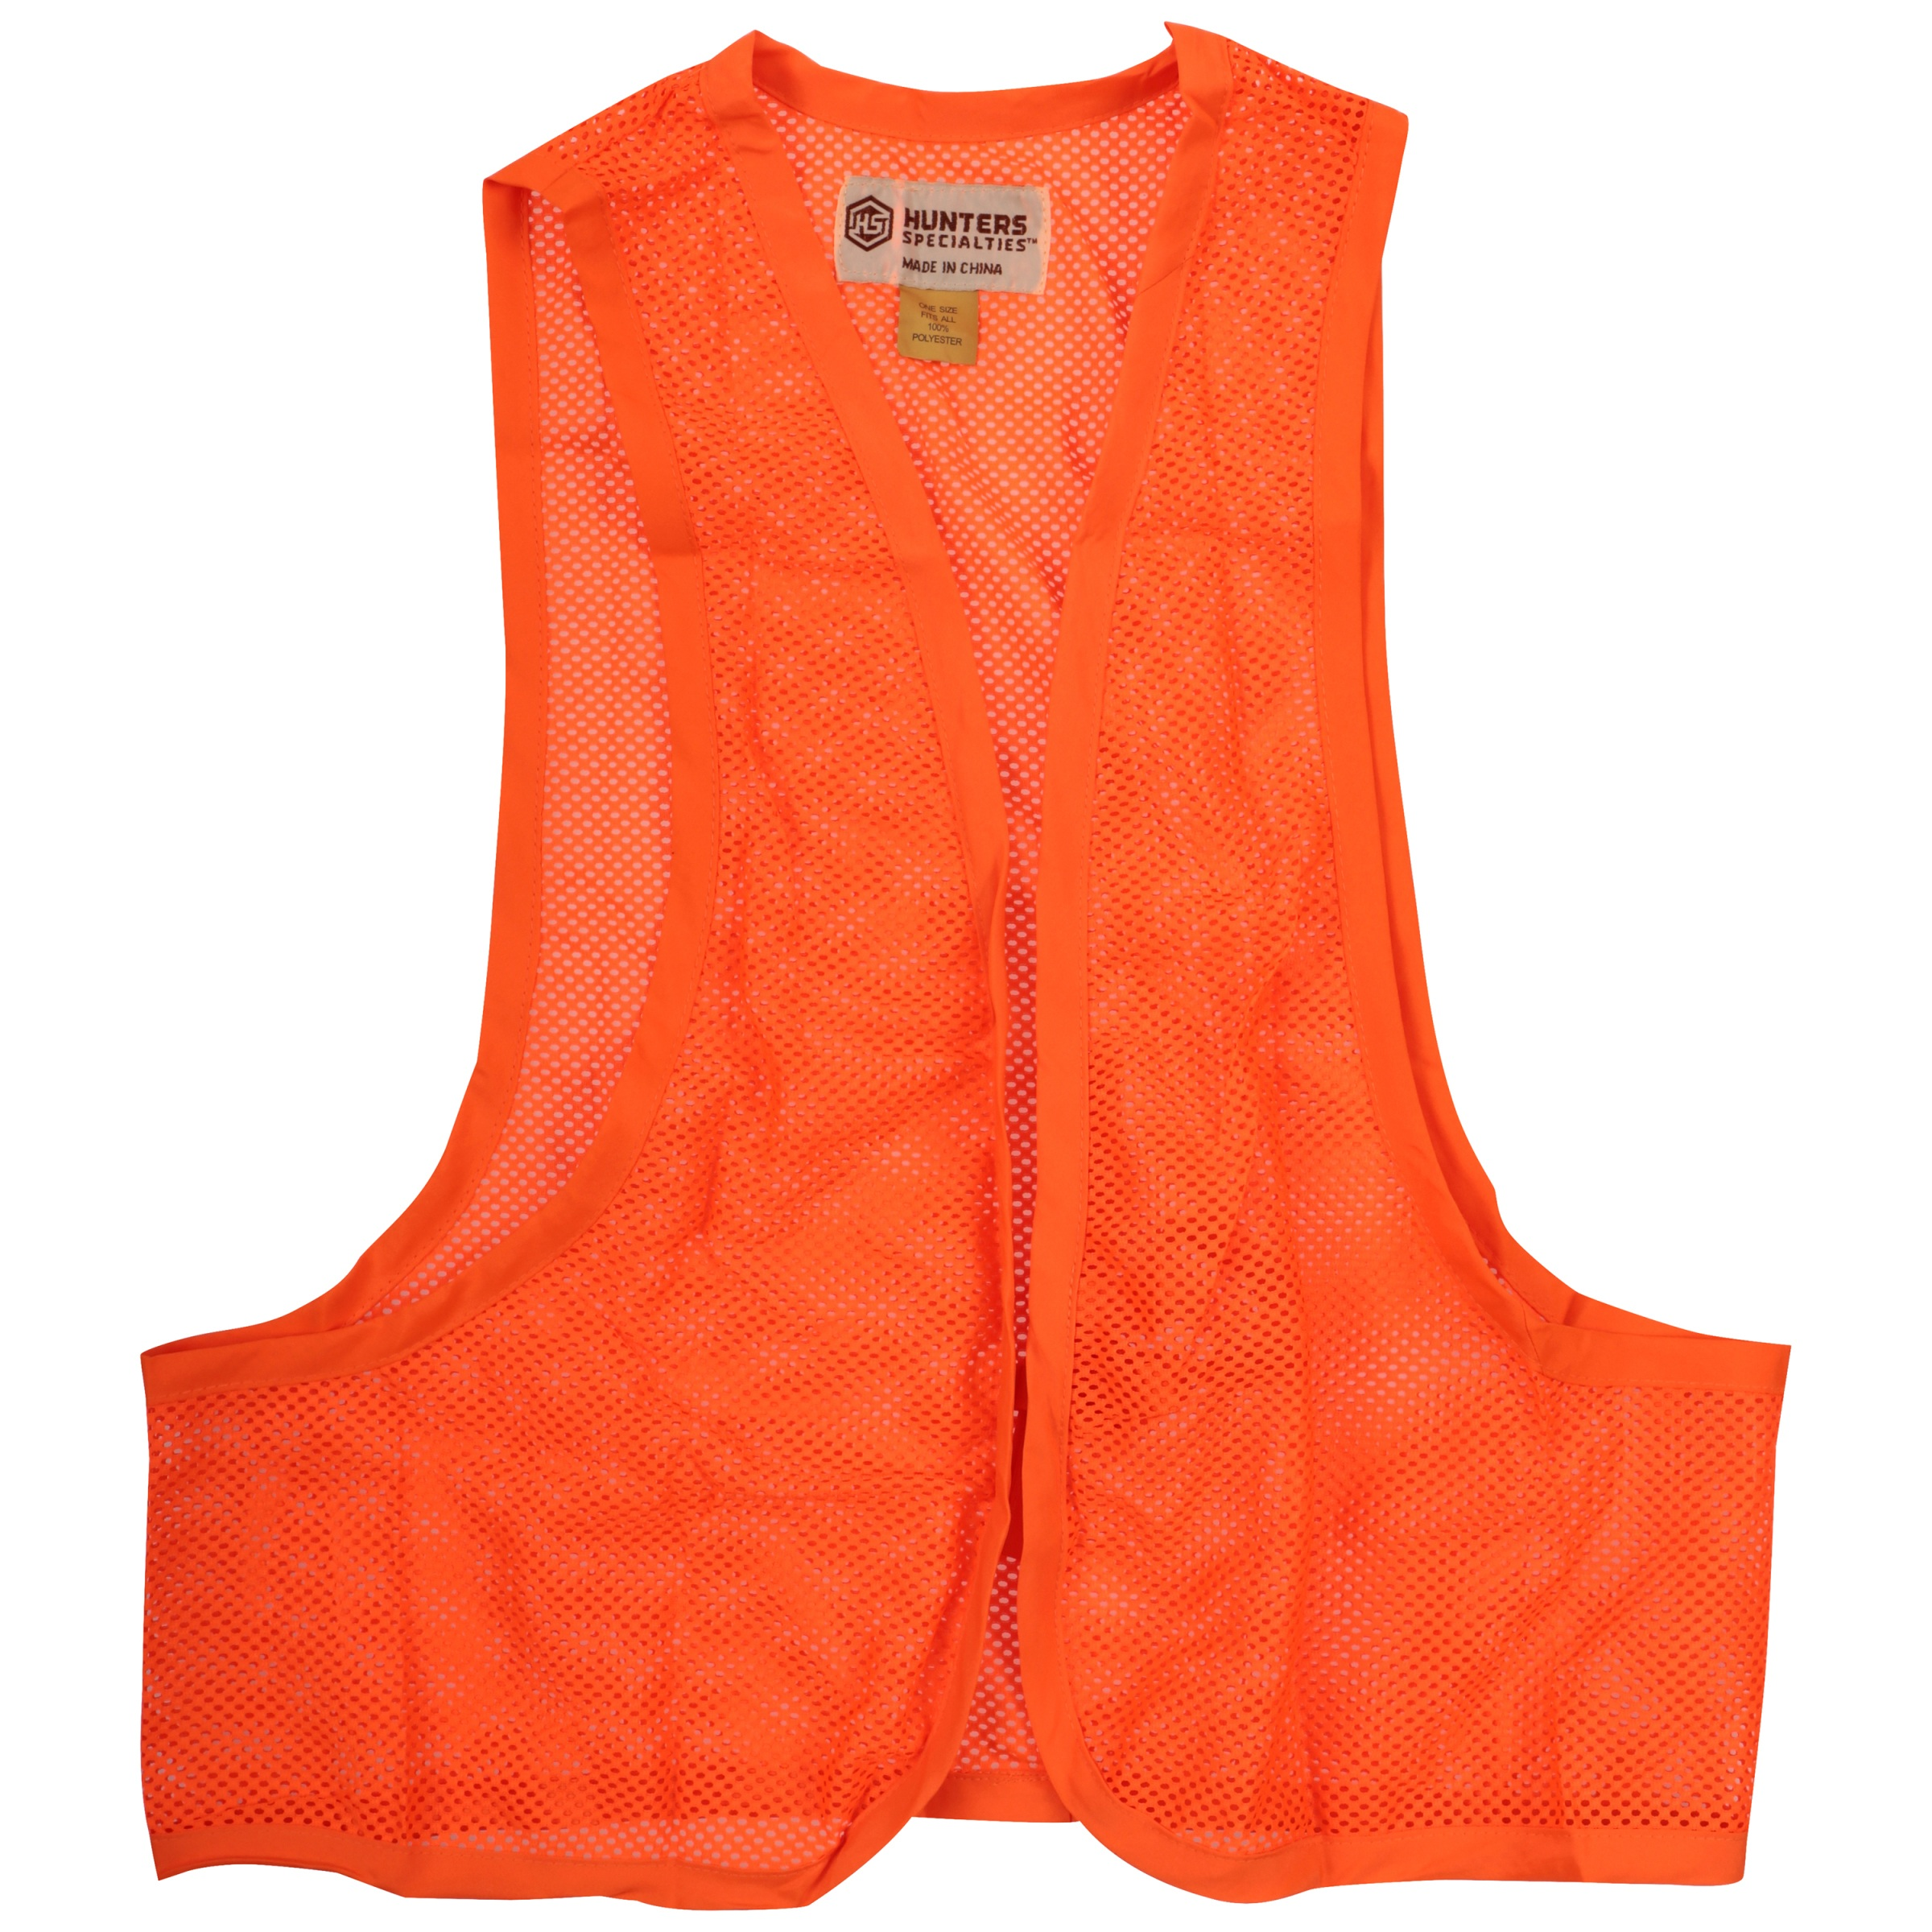 Hunters Specialities™ Blaze Orange Mesh Safety Vest